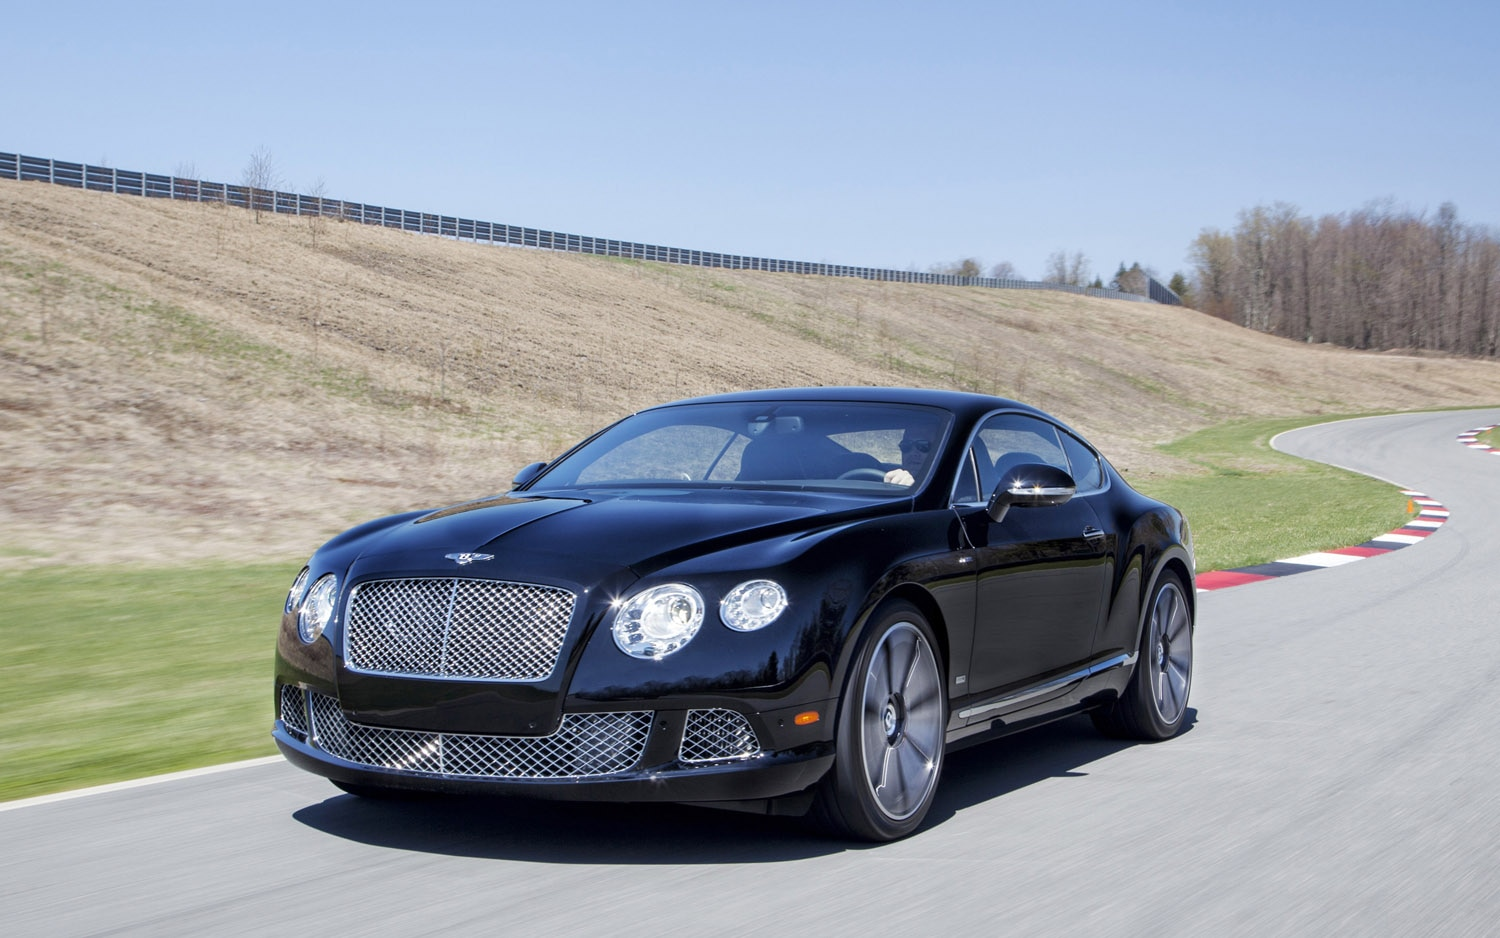 2013 Bentley Continental Guy Smith Le Mans Edition Front Three Quarter 21